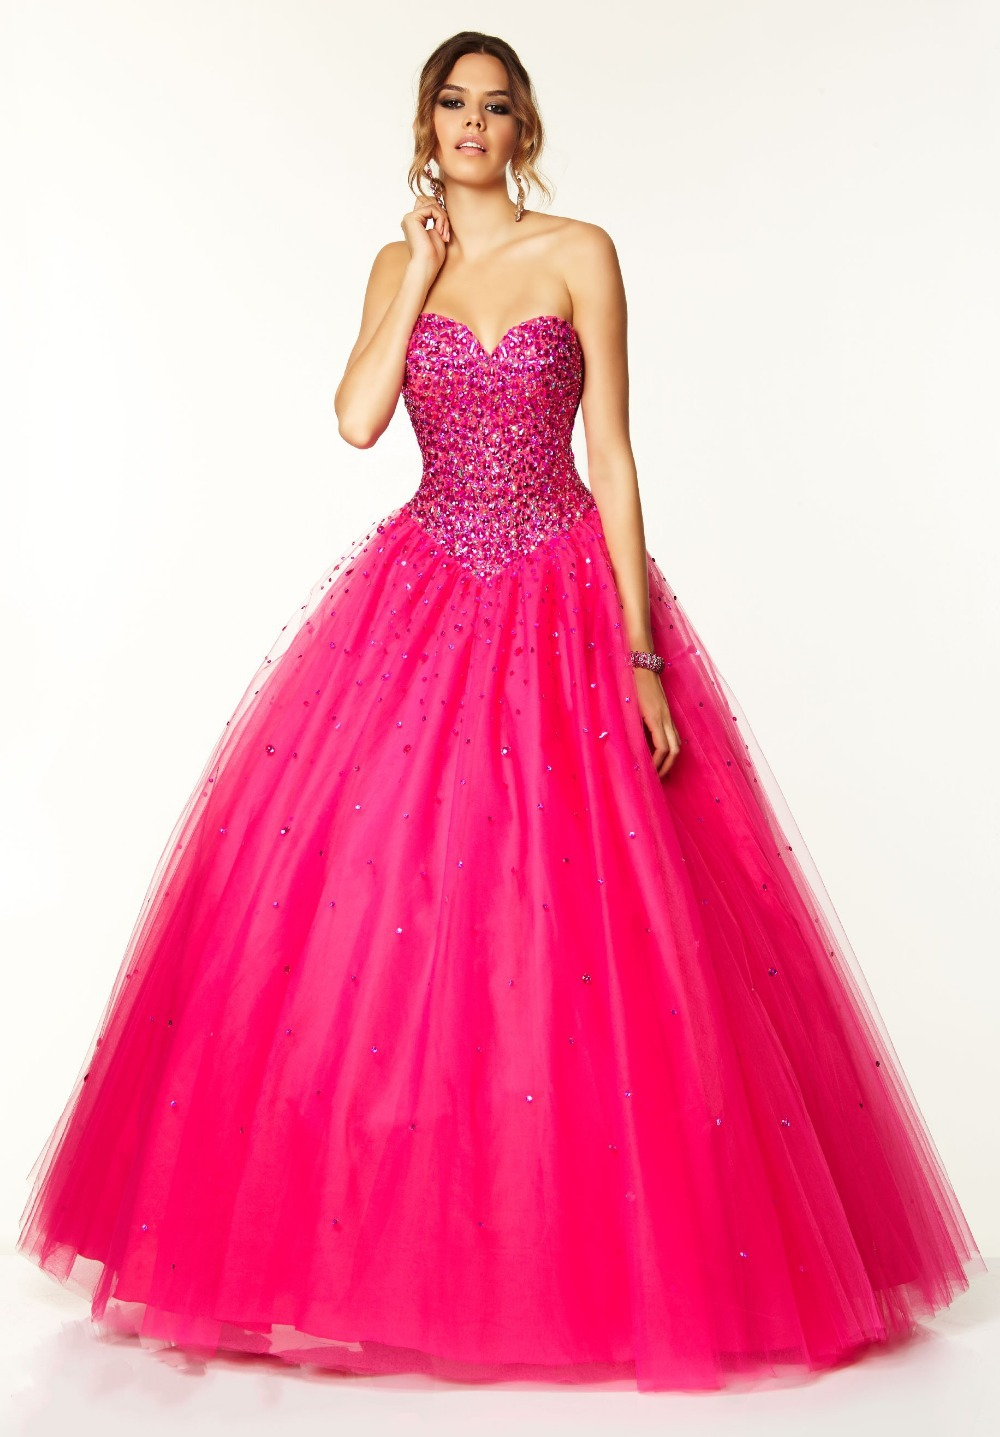 Popular Hot Pink Ball Gown Prom Dresses-Buy Cheap Hot Pink Ball ...